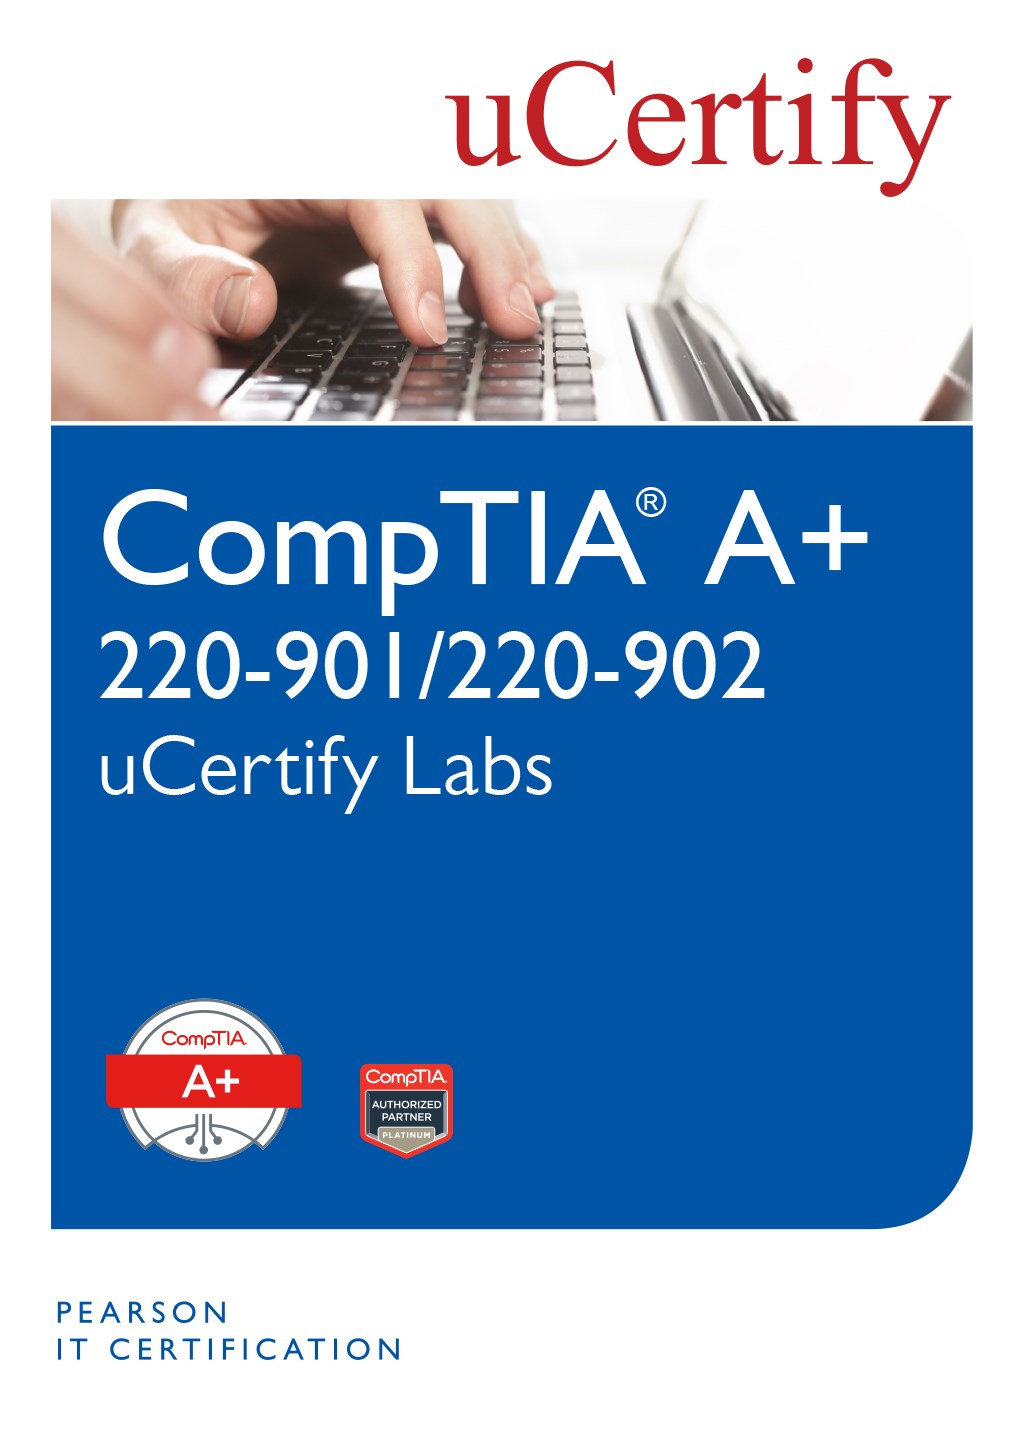 CompTIA A+ 220-901/220-902 uCertify Labs Student Access Card